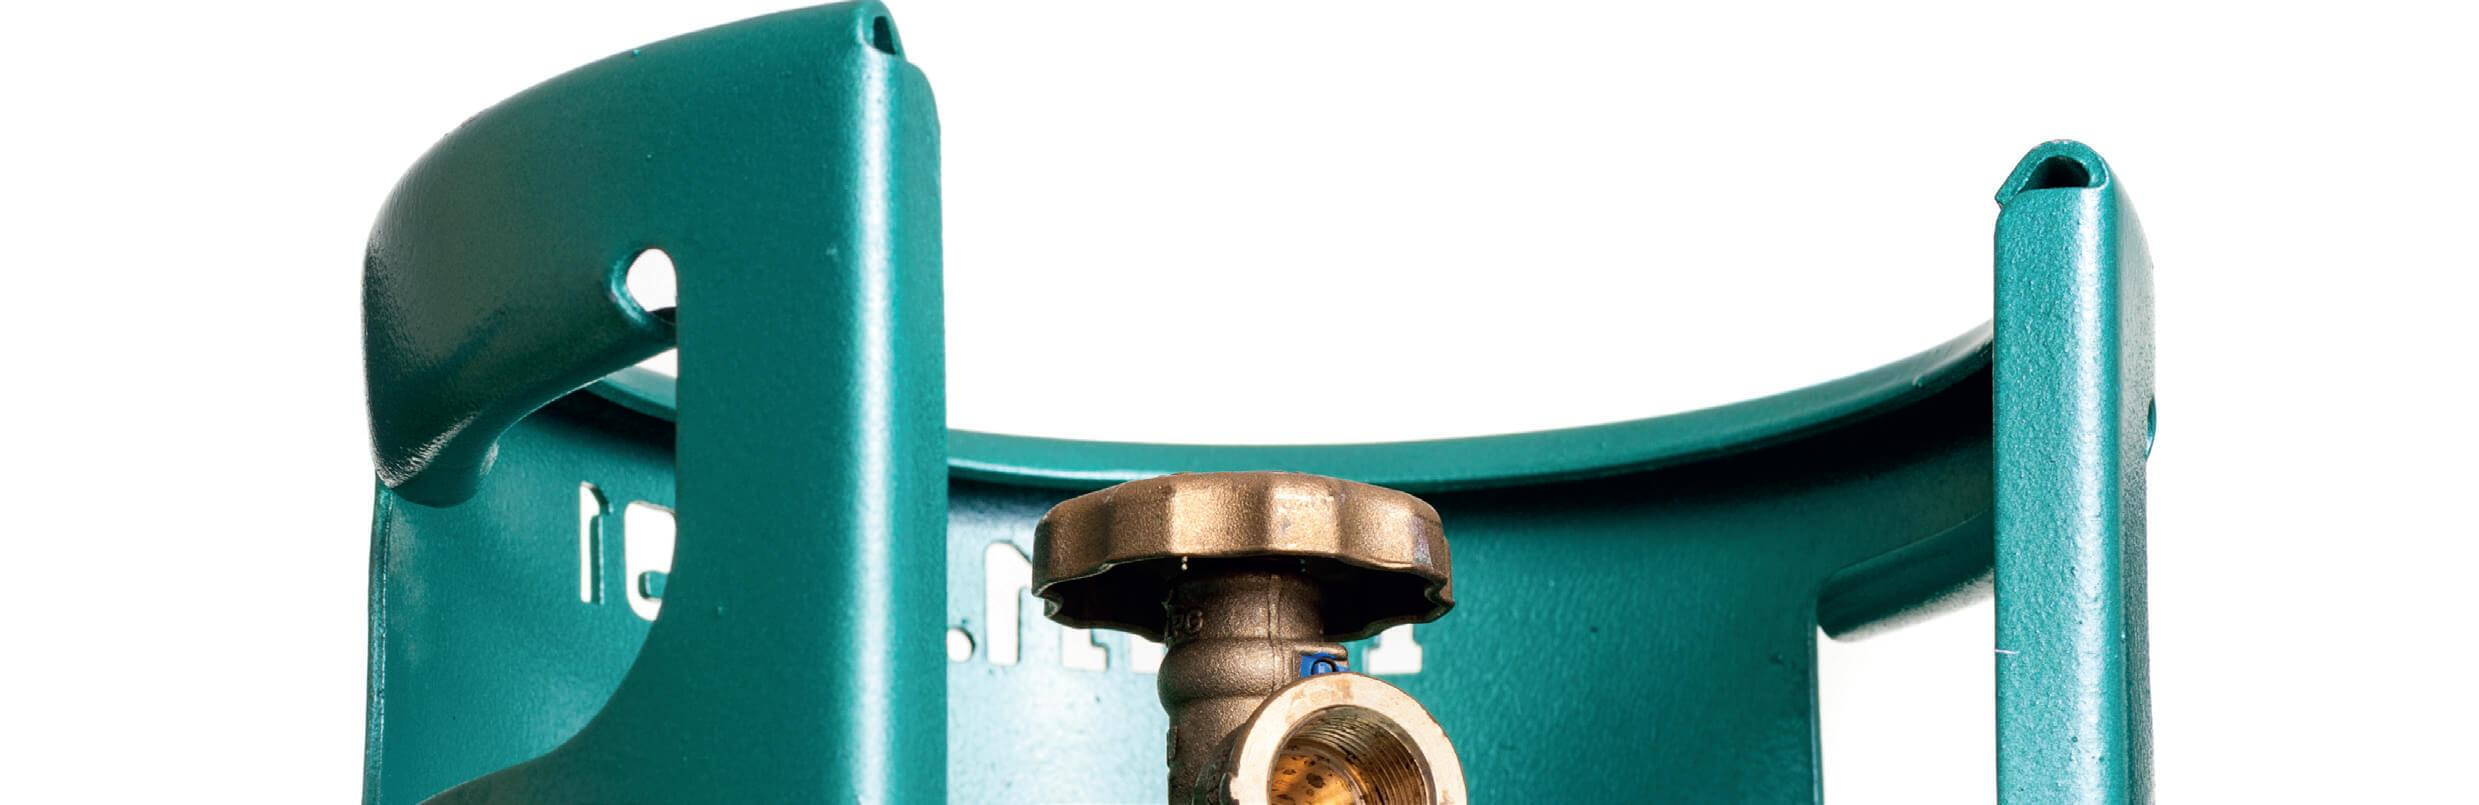 LPG - The smart alternative, everywhere you need it - What is LPG